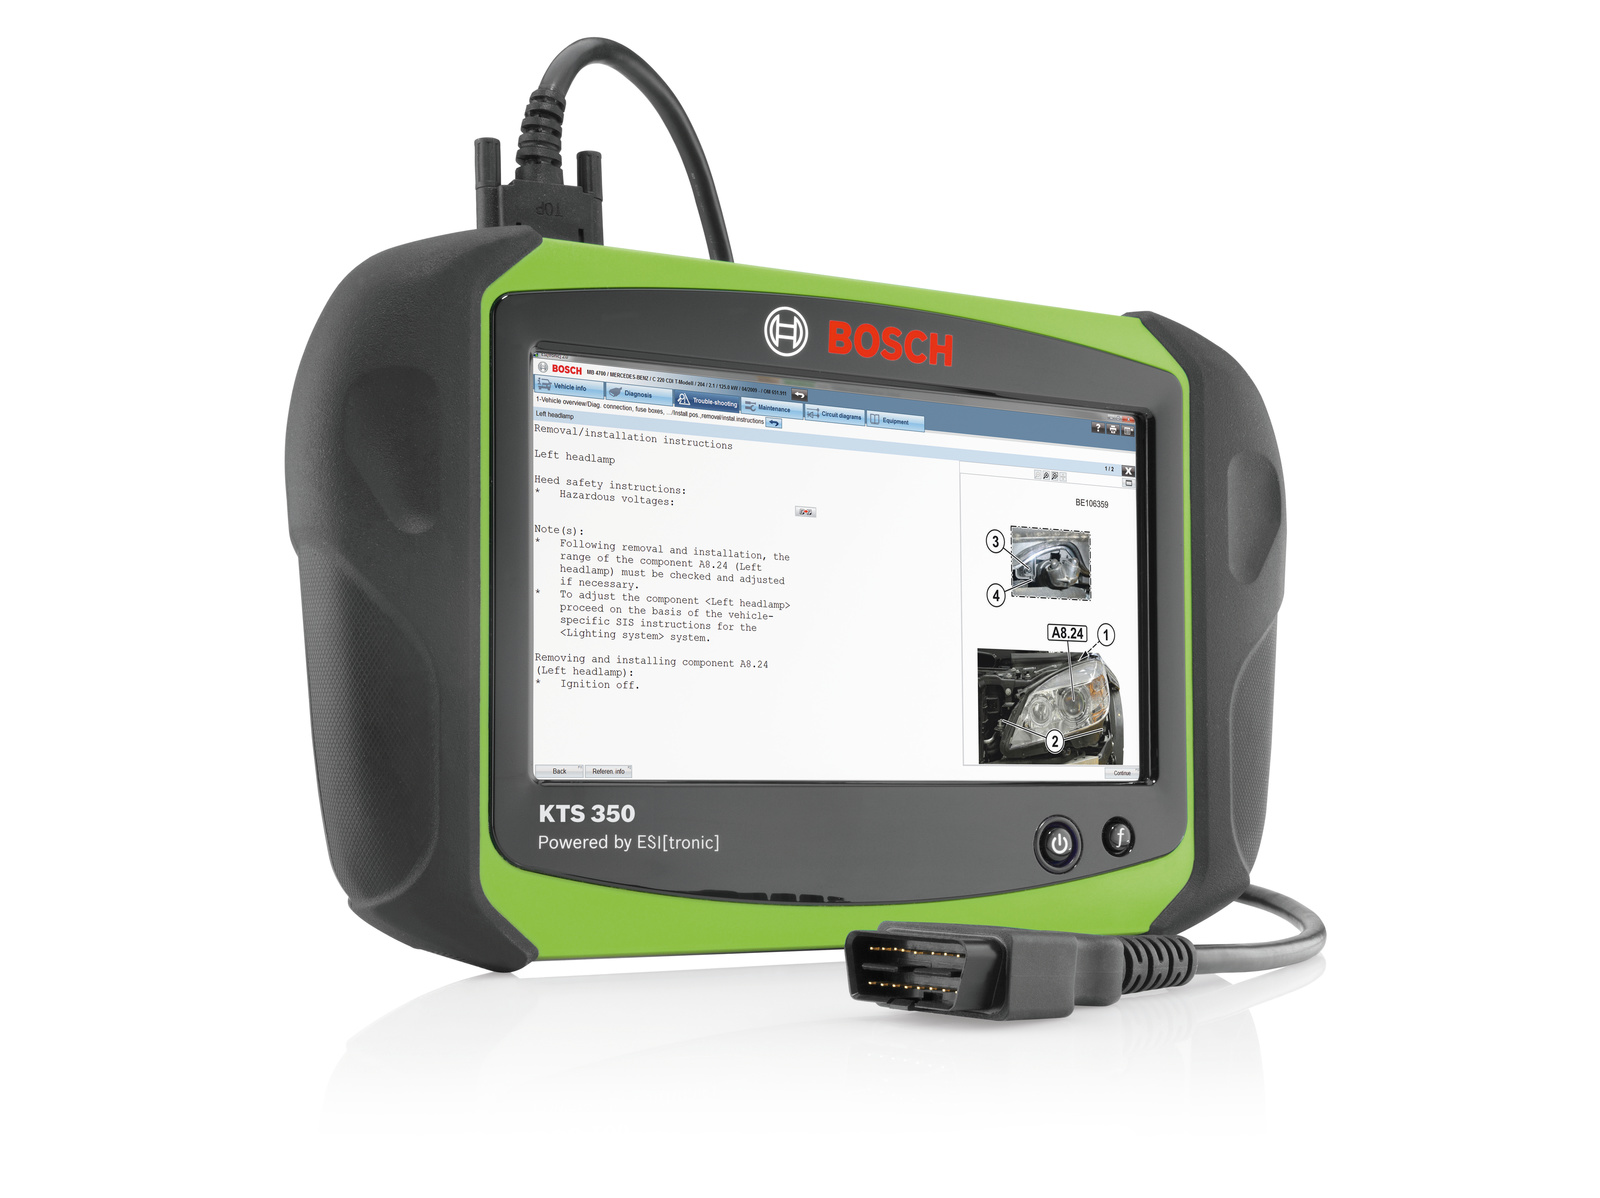 Future-proof with new Ethernet diagnostic interface